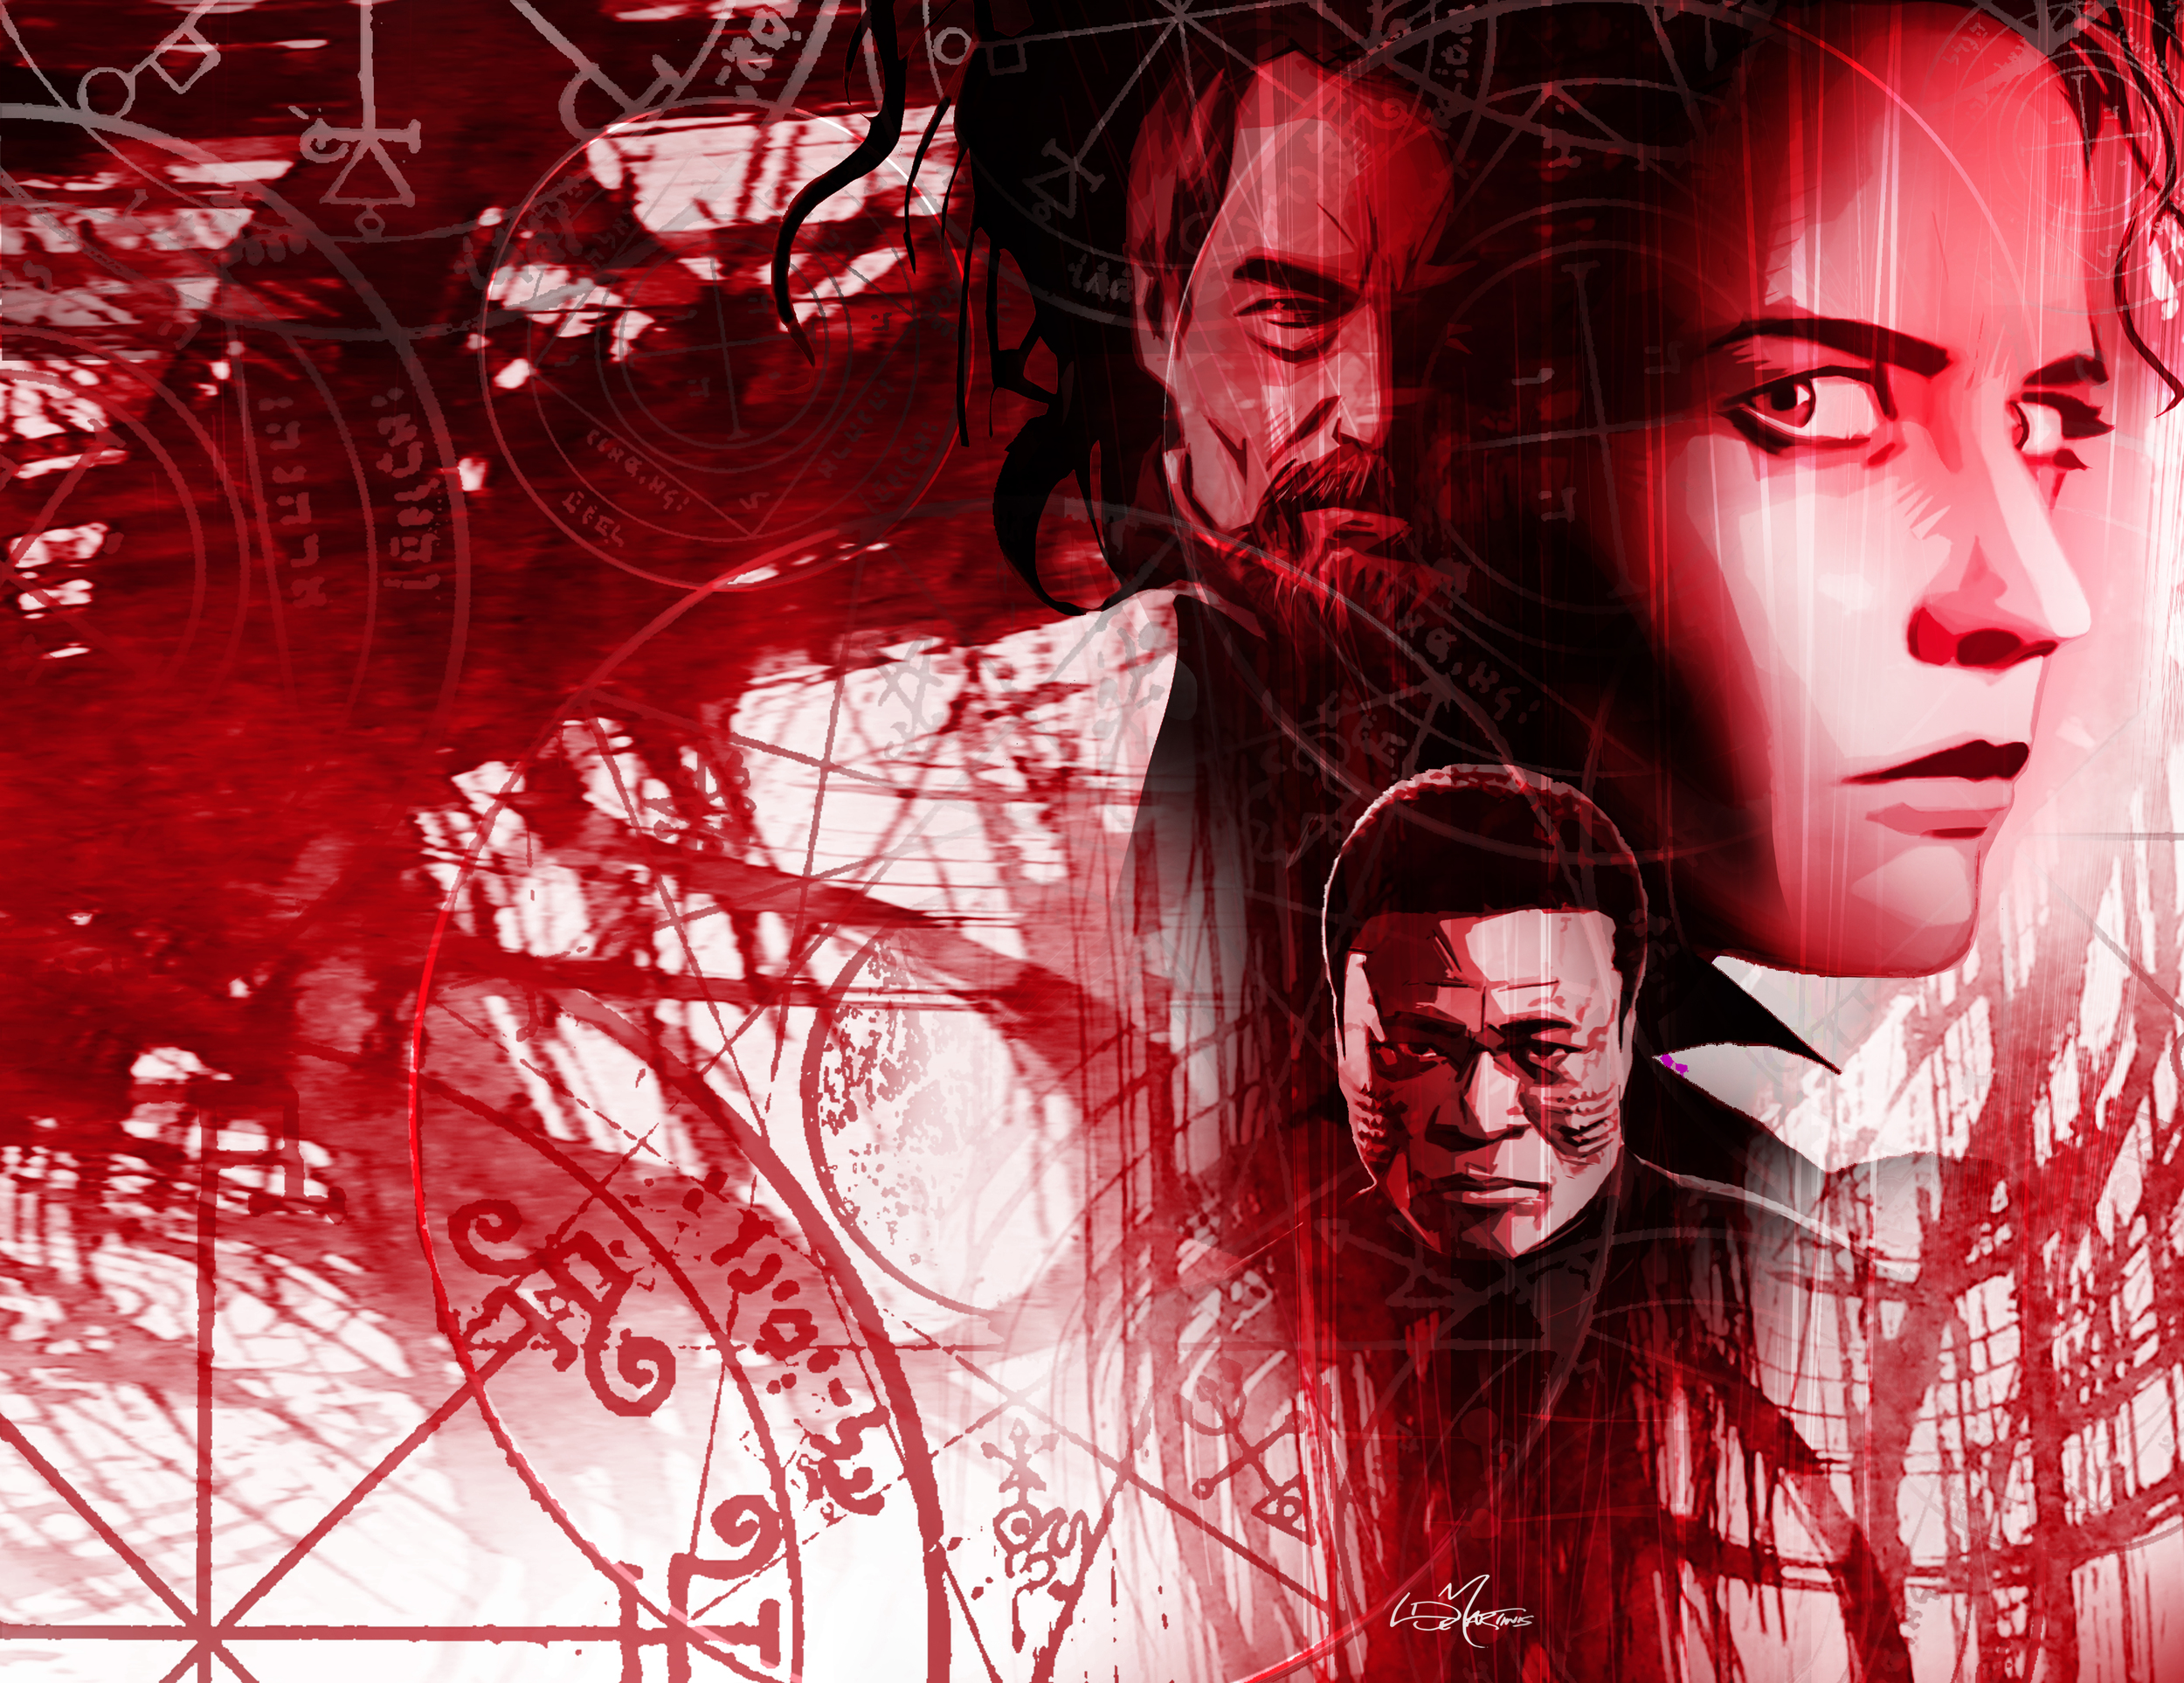 Penny Dreadful Issue #1 Variant Cover By Louie De Martinis